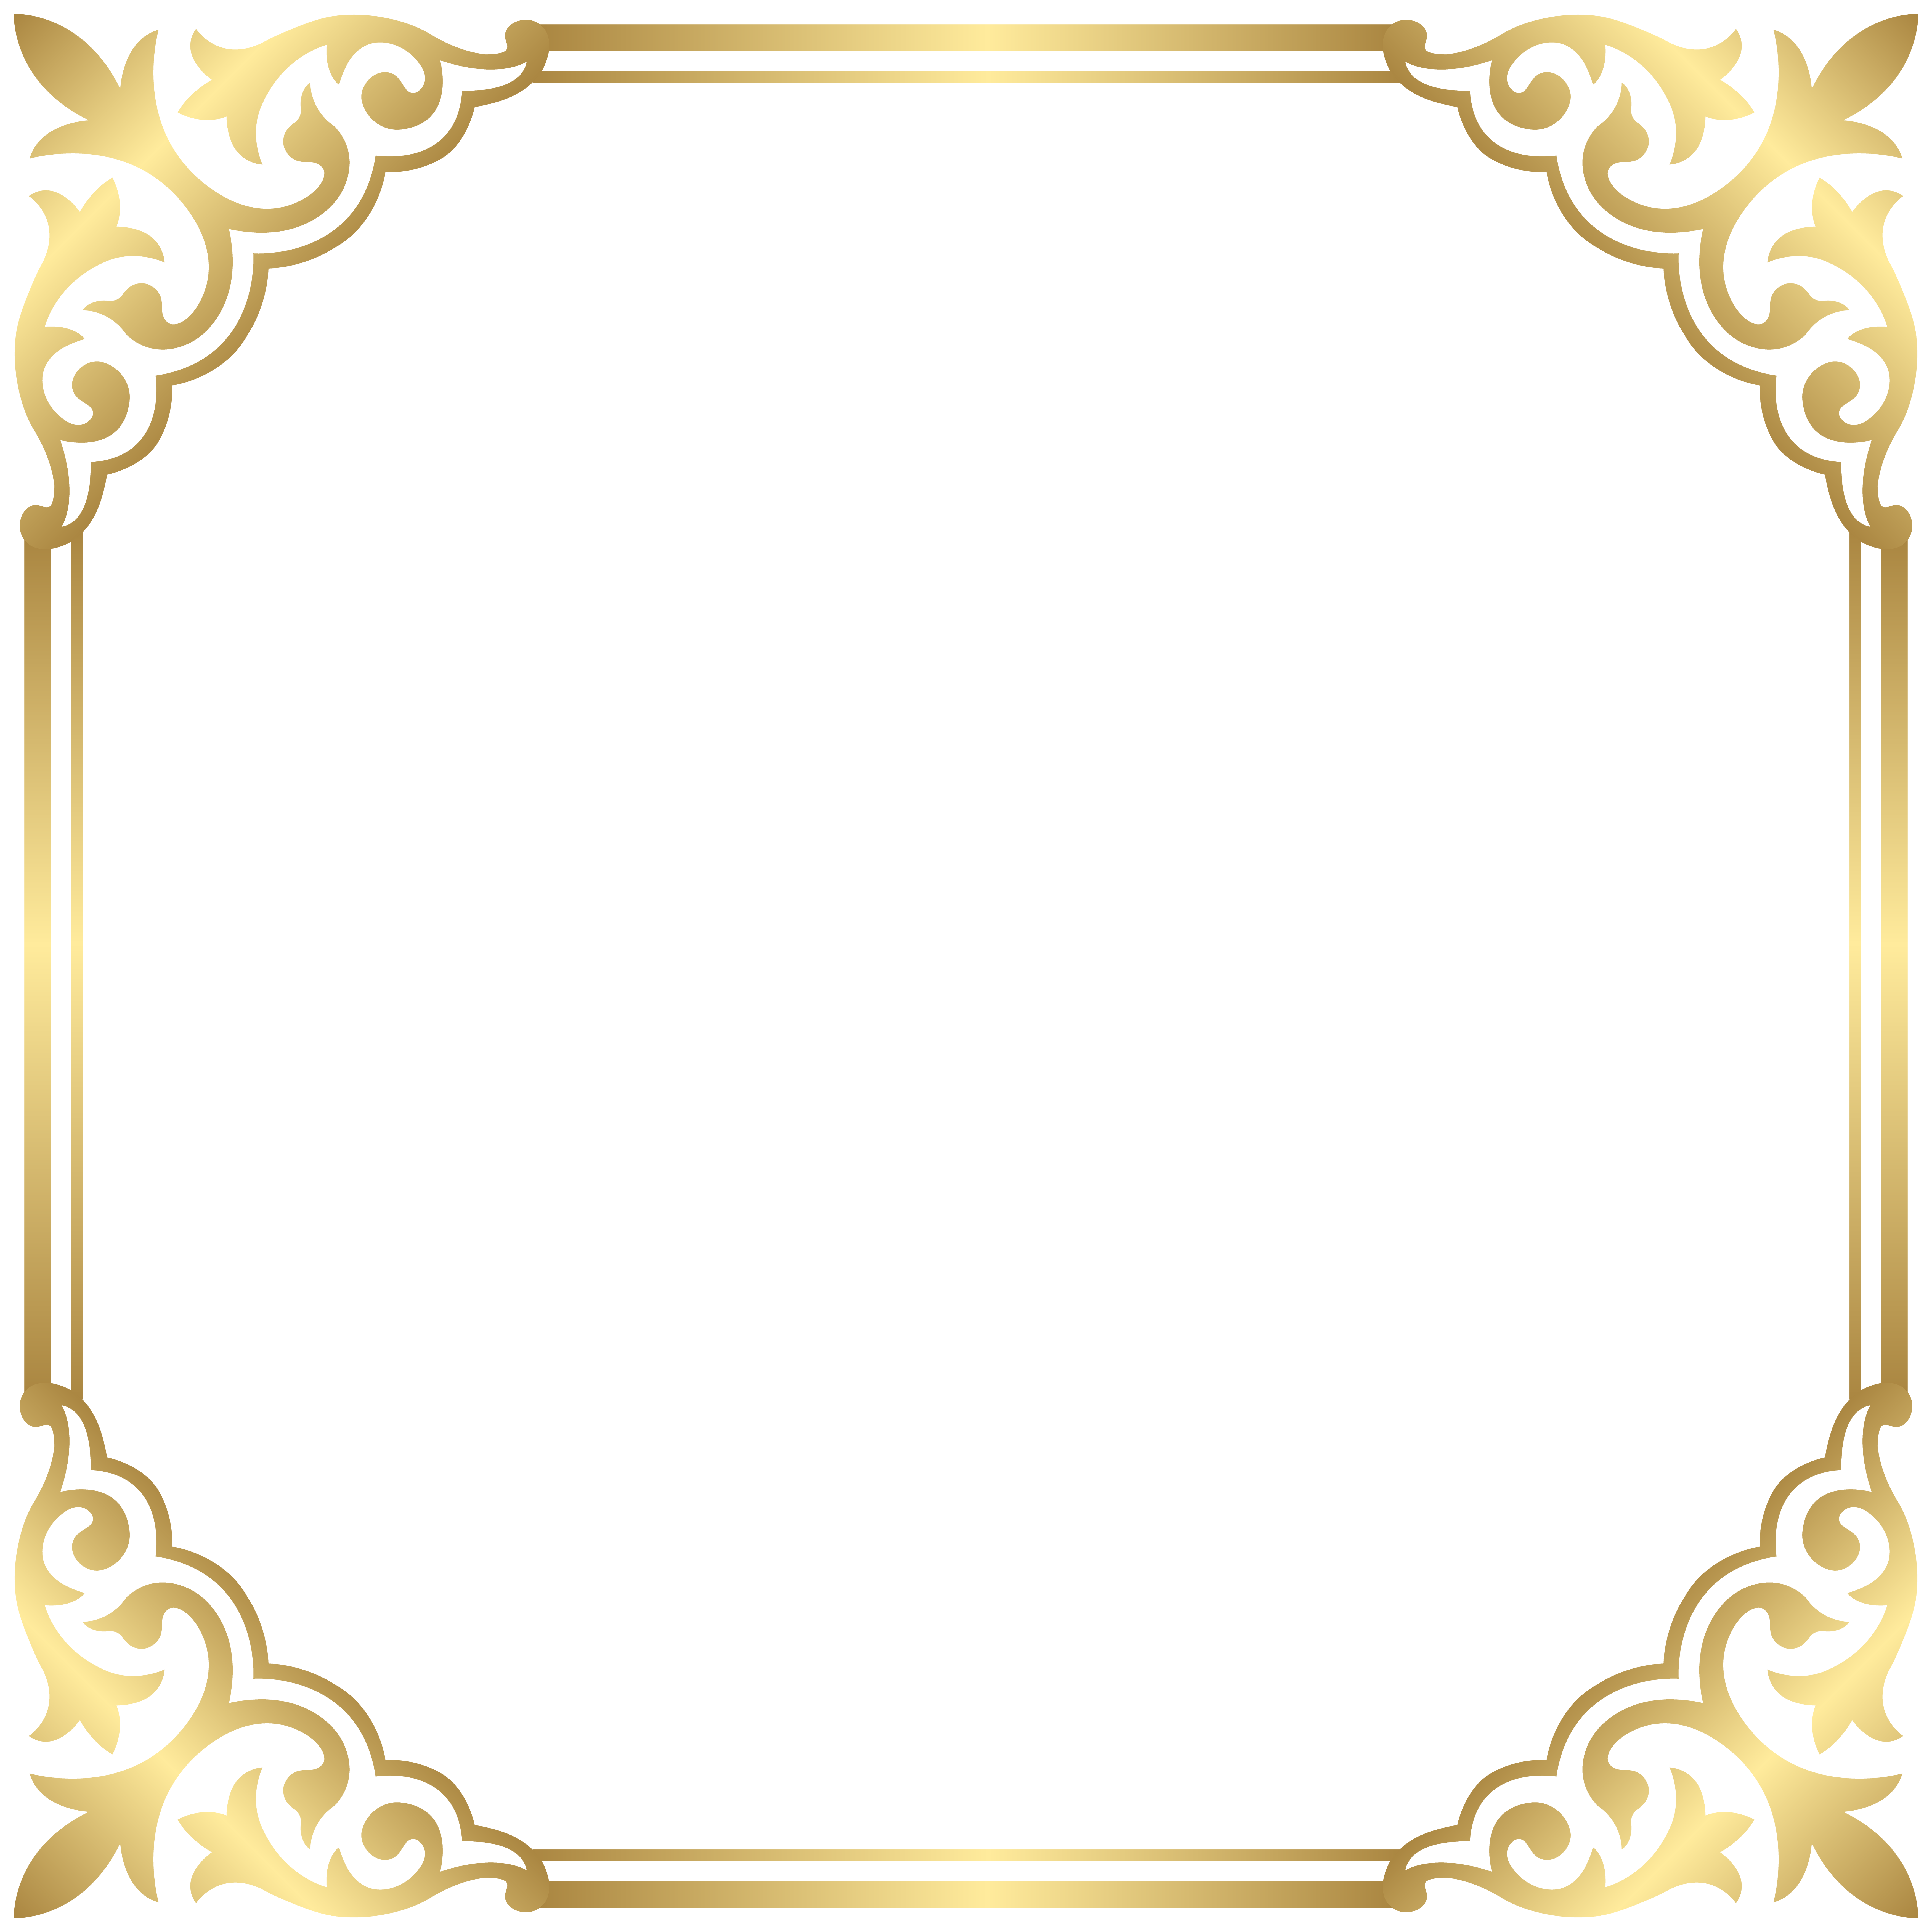 Fancy crown border clipart banner stock Gold Border Clipart - clipart banner stock